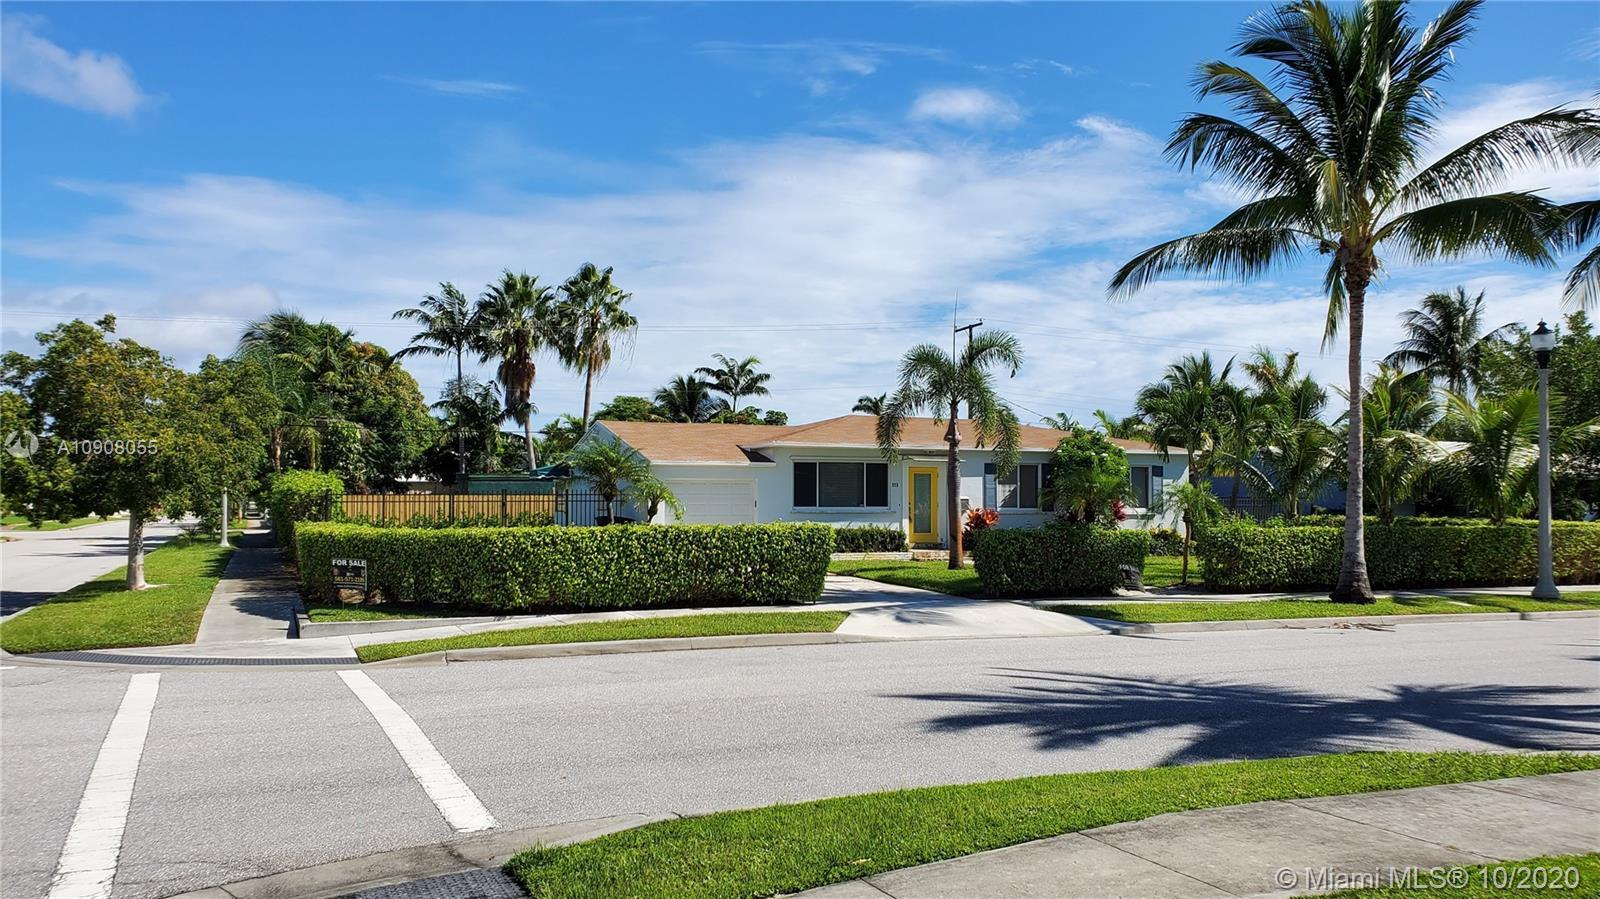 Come and view this cozy home on a corner lot in the desirable Palm Beach SoSo area, a few blocks awa